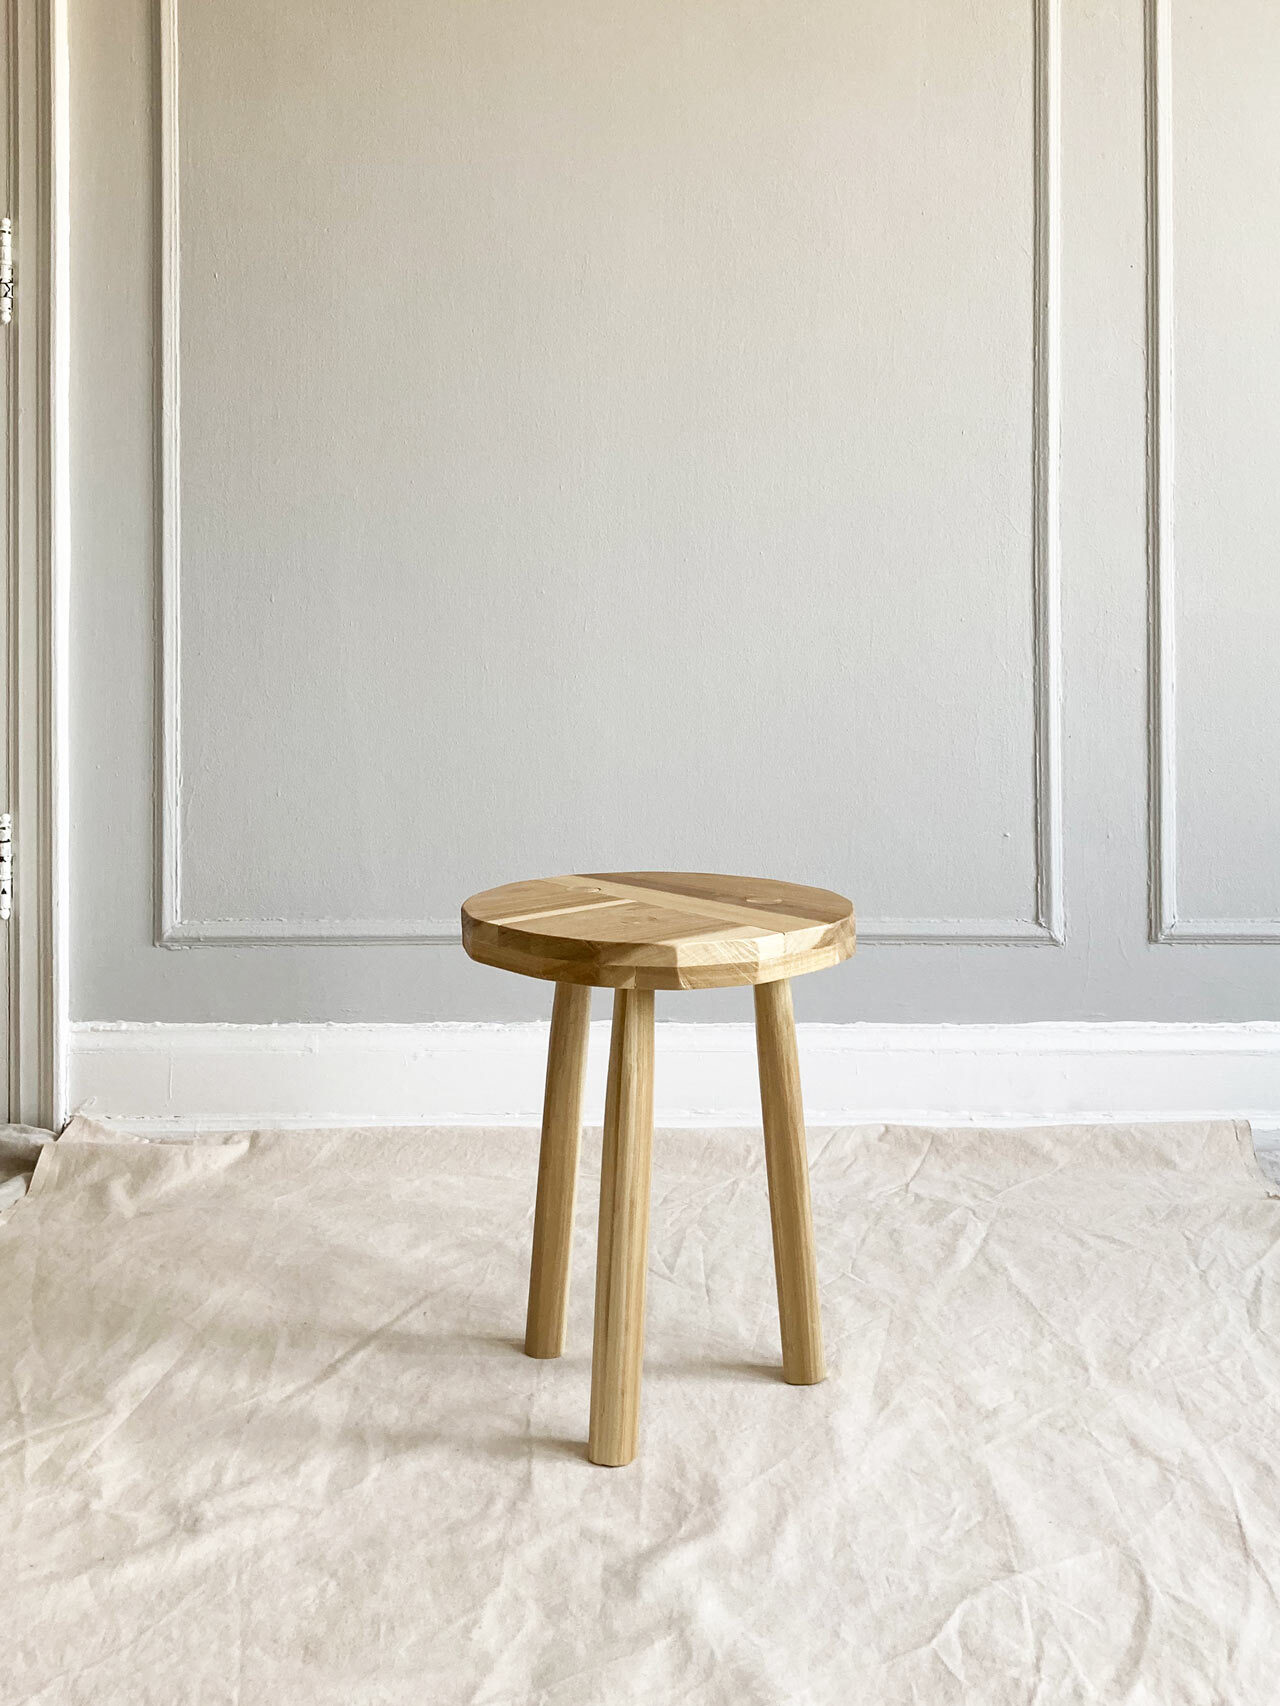 Simple Joinery Poplar Stool by Ian Anderson